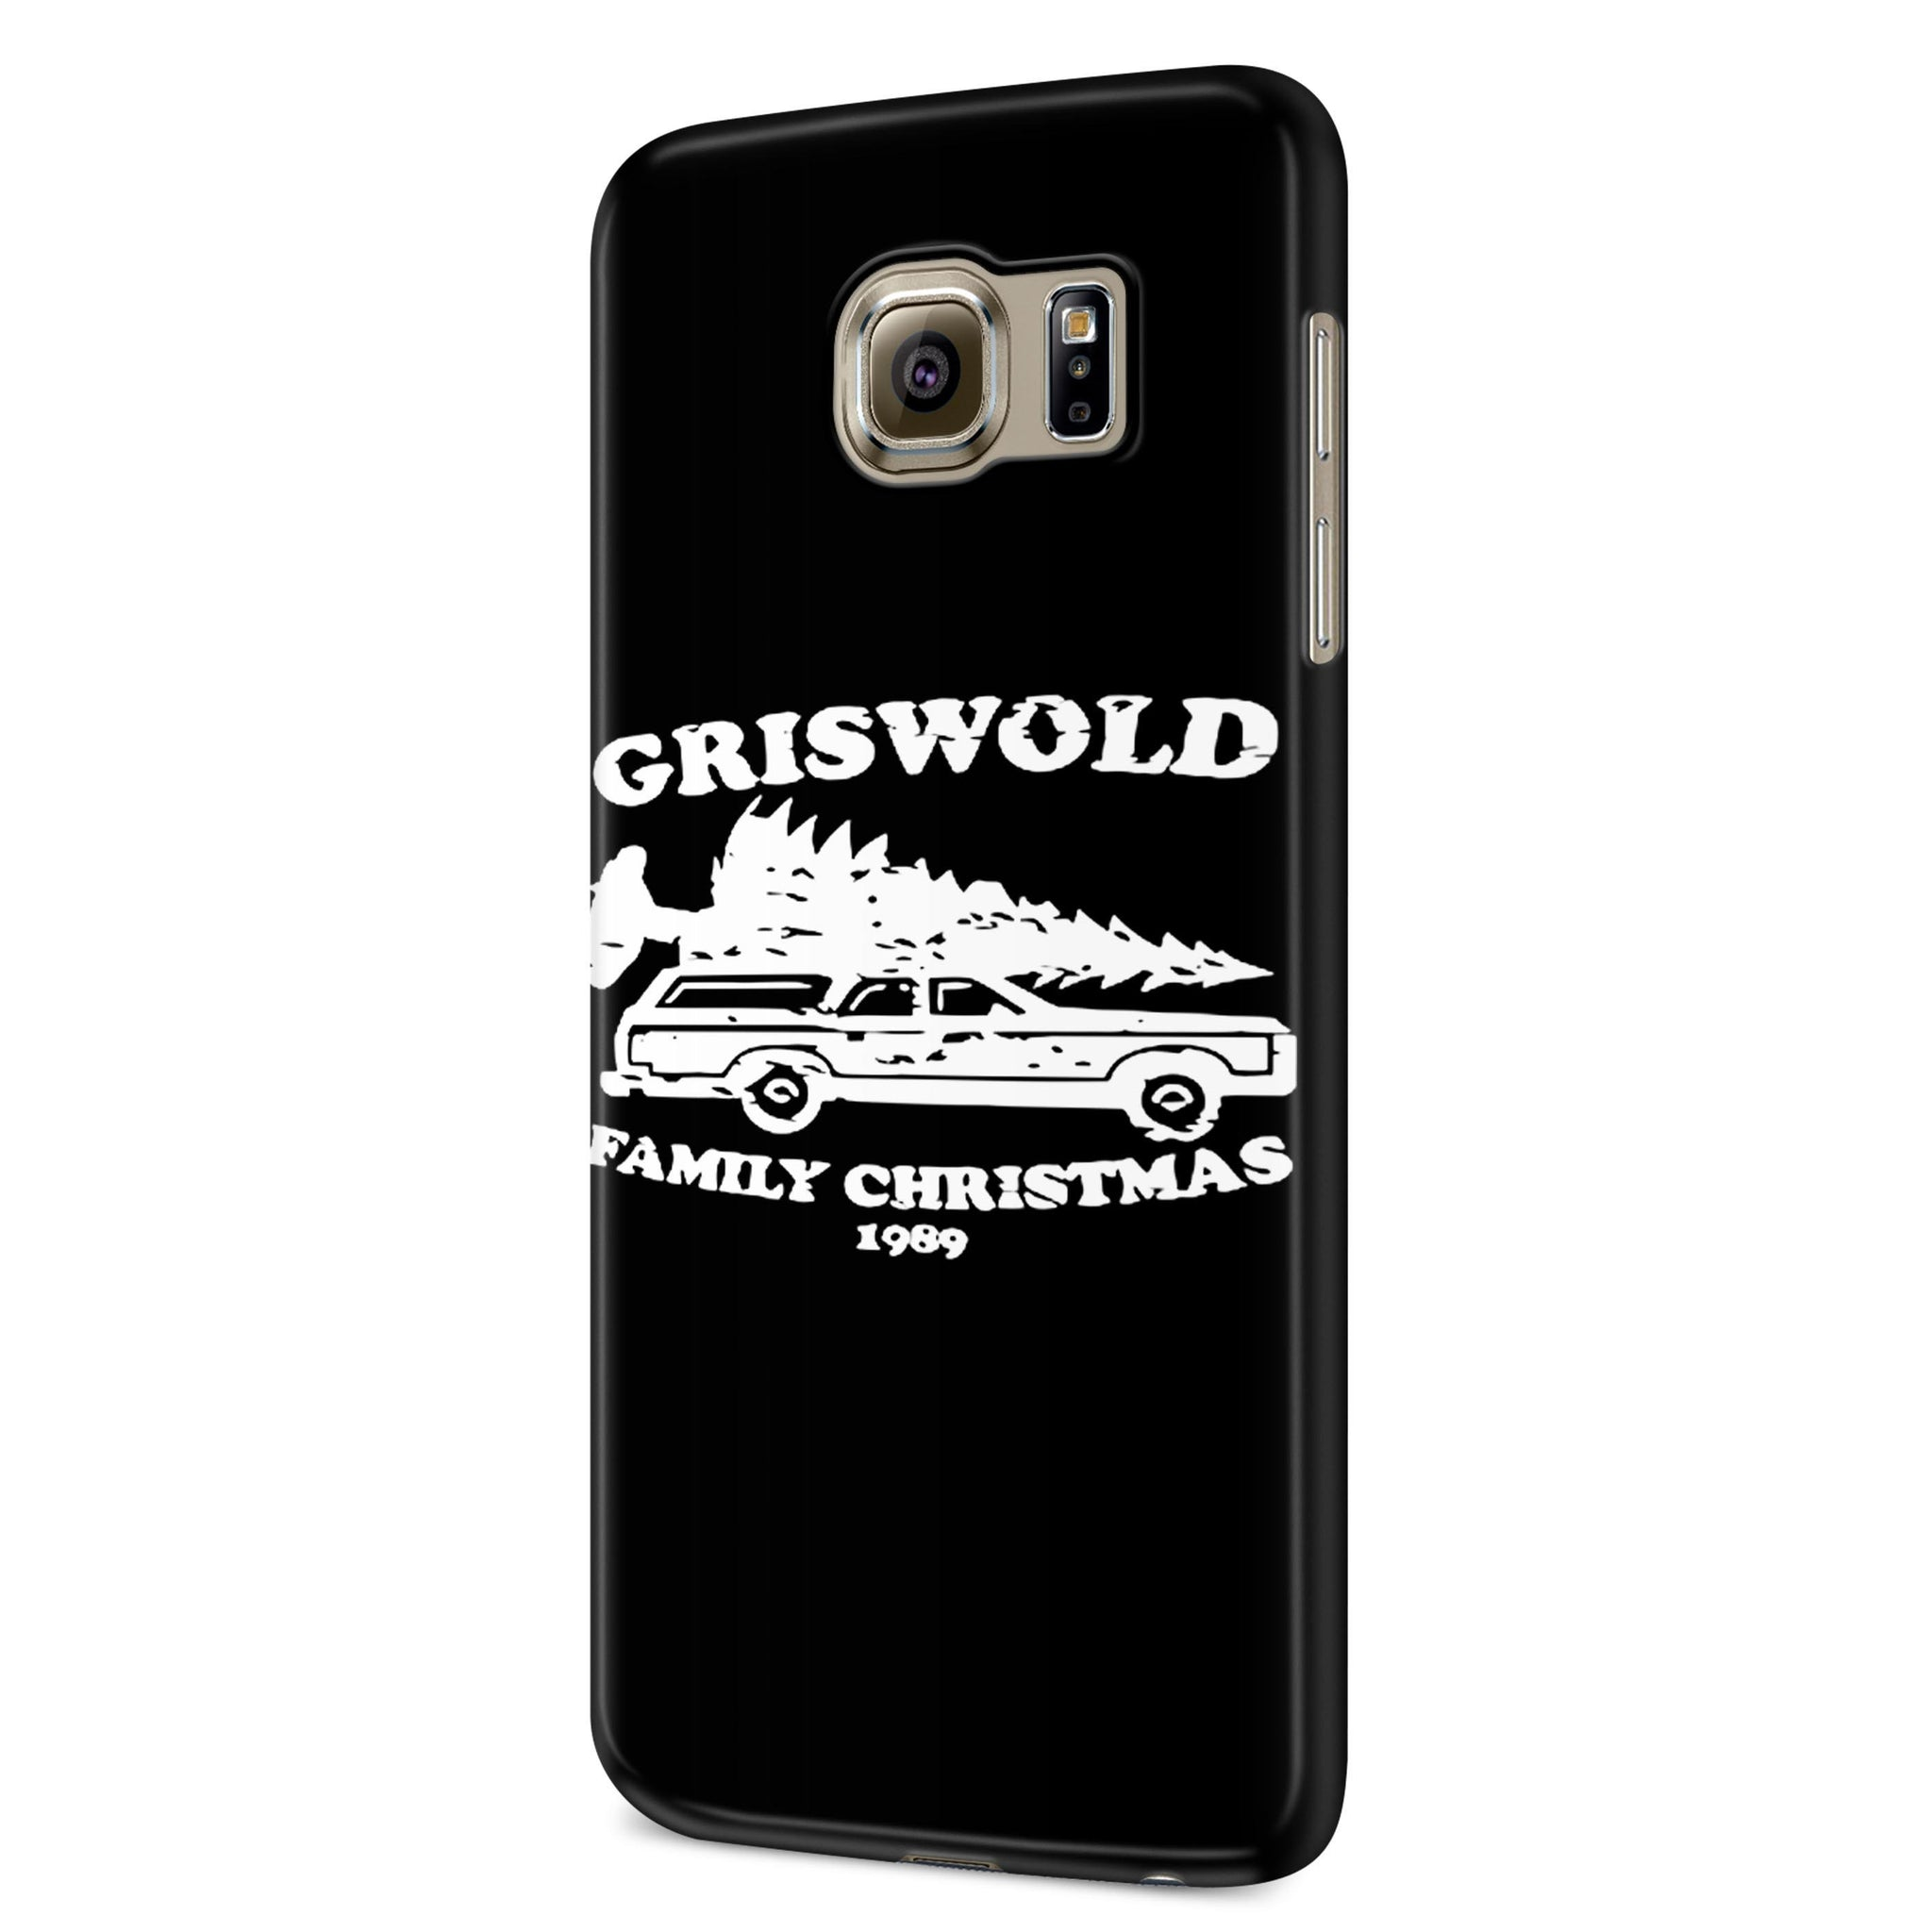 Griswold Family Christmas Samsung Galaxy S4/ S5 / S6 / S6 Edge 3D Case